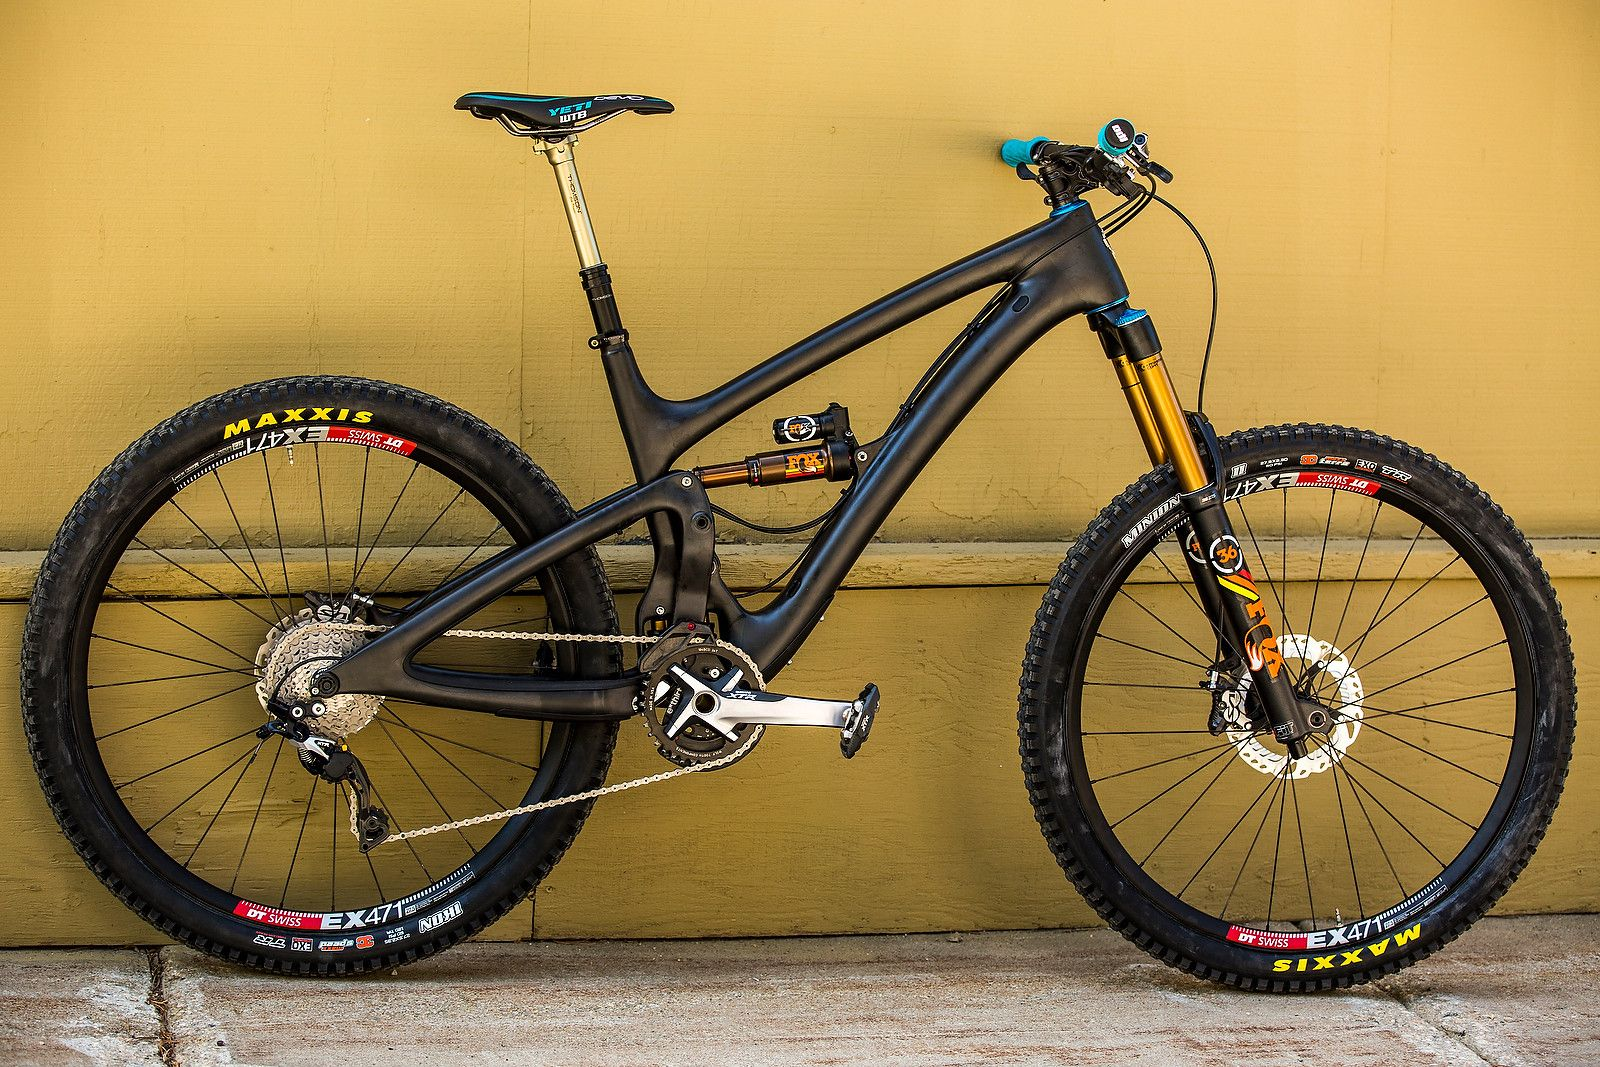 Jared Graves Prototype Long Travel Yeti Sb6c With Switch Infinity